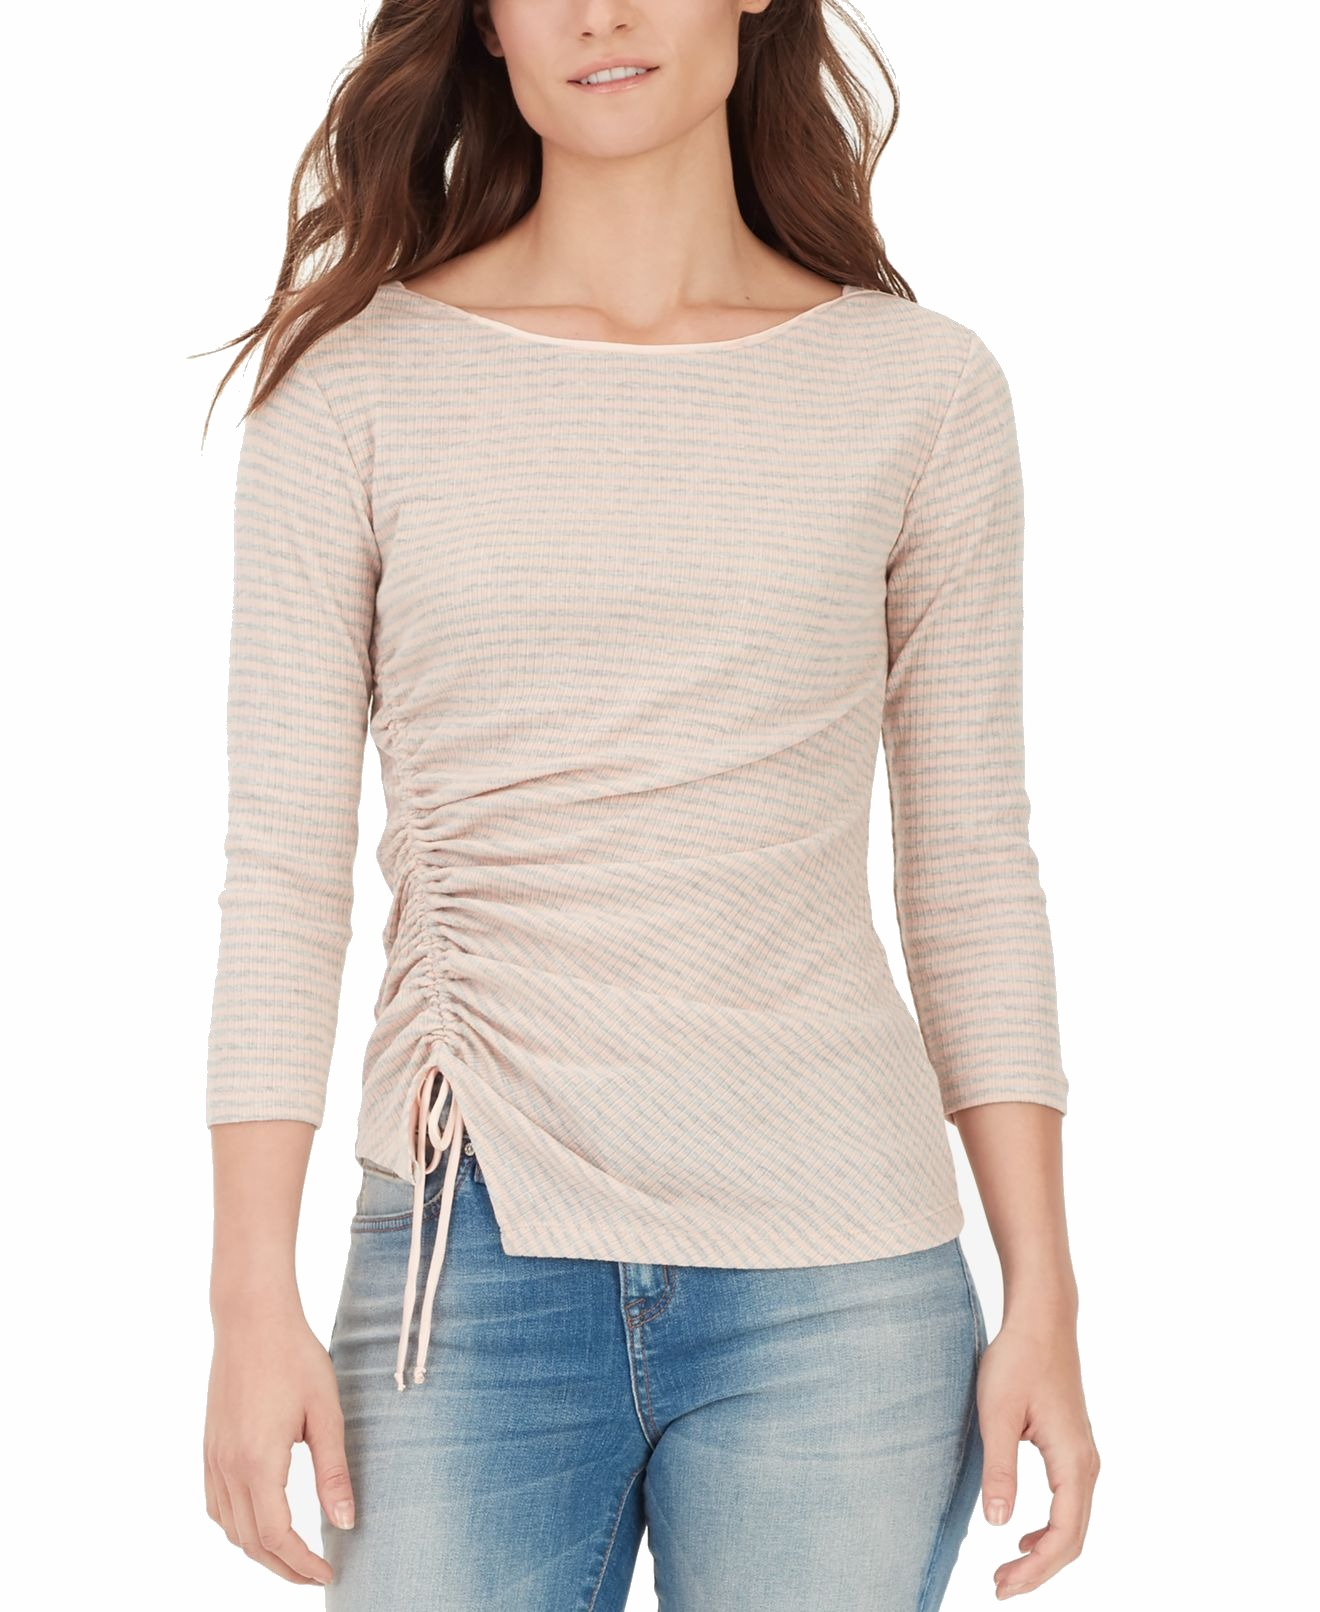 William-Rast-Women-039-s-Top-Blouse-Pink-Size-Medium-M-Ruched-Striped